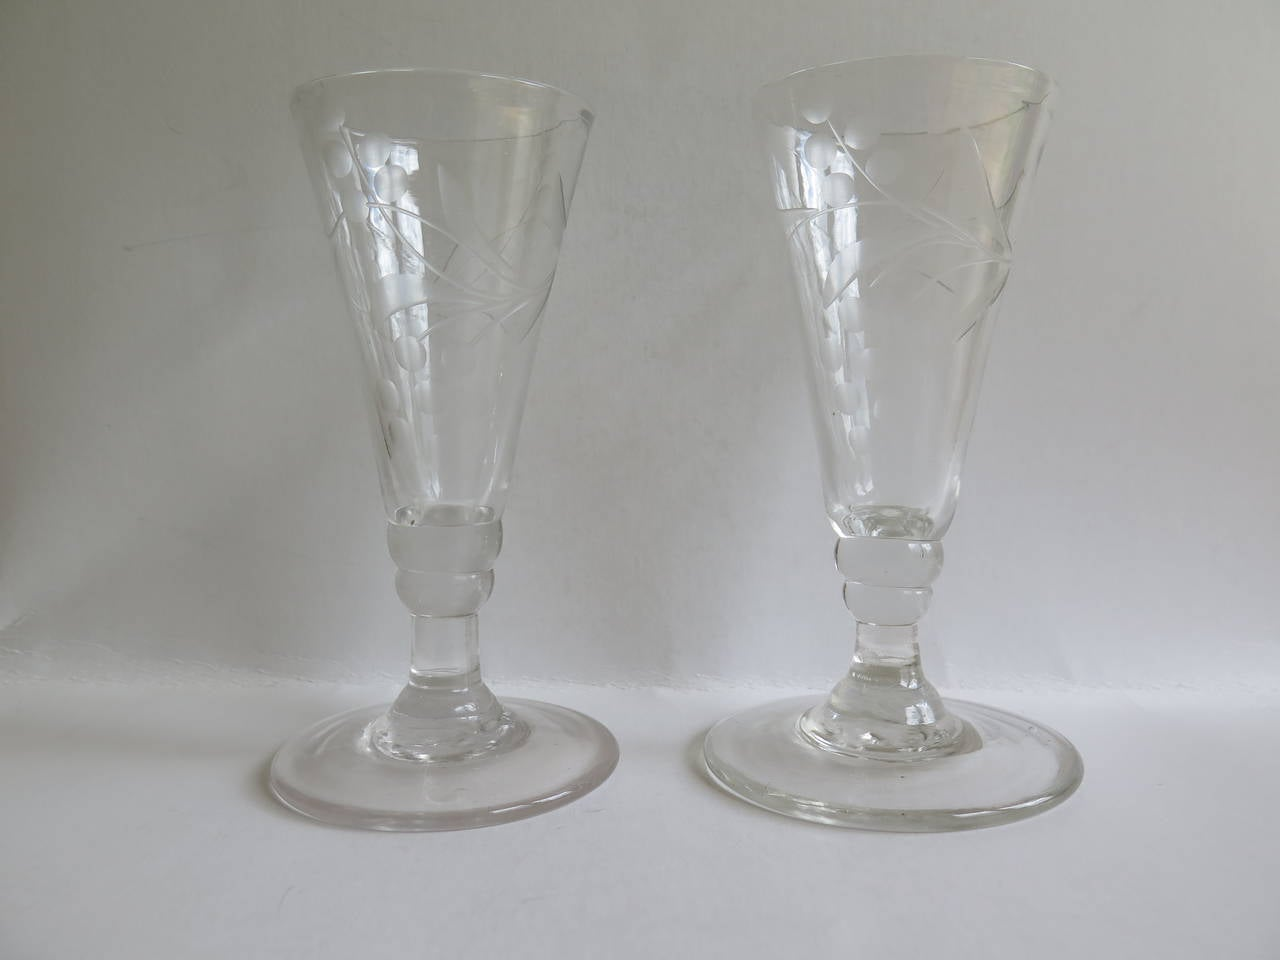 Georgian Pair of Wine Drinking Glasses Hand-blown and Engraved, Circa 1790 In Good Condition For Sale In Lincoln, Lincolnshire